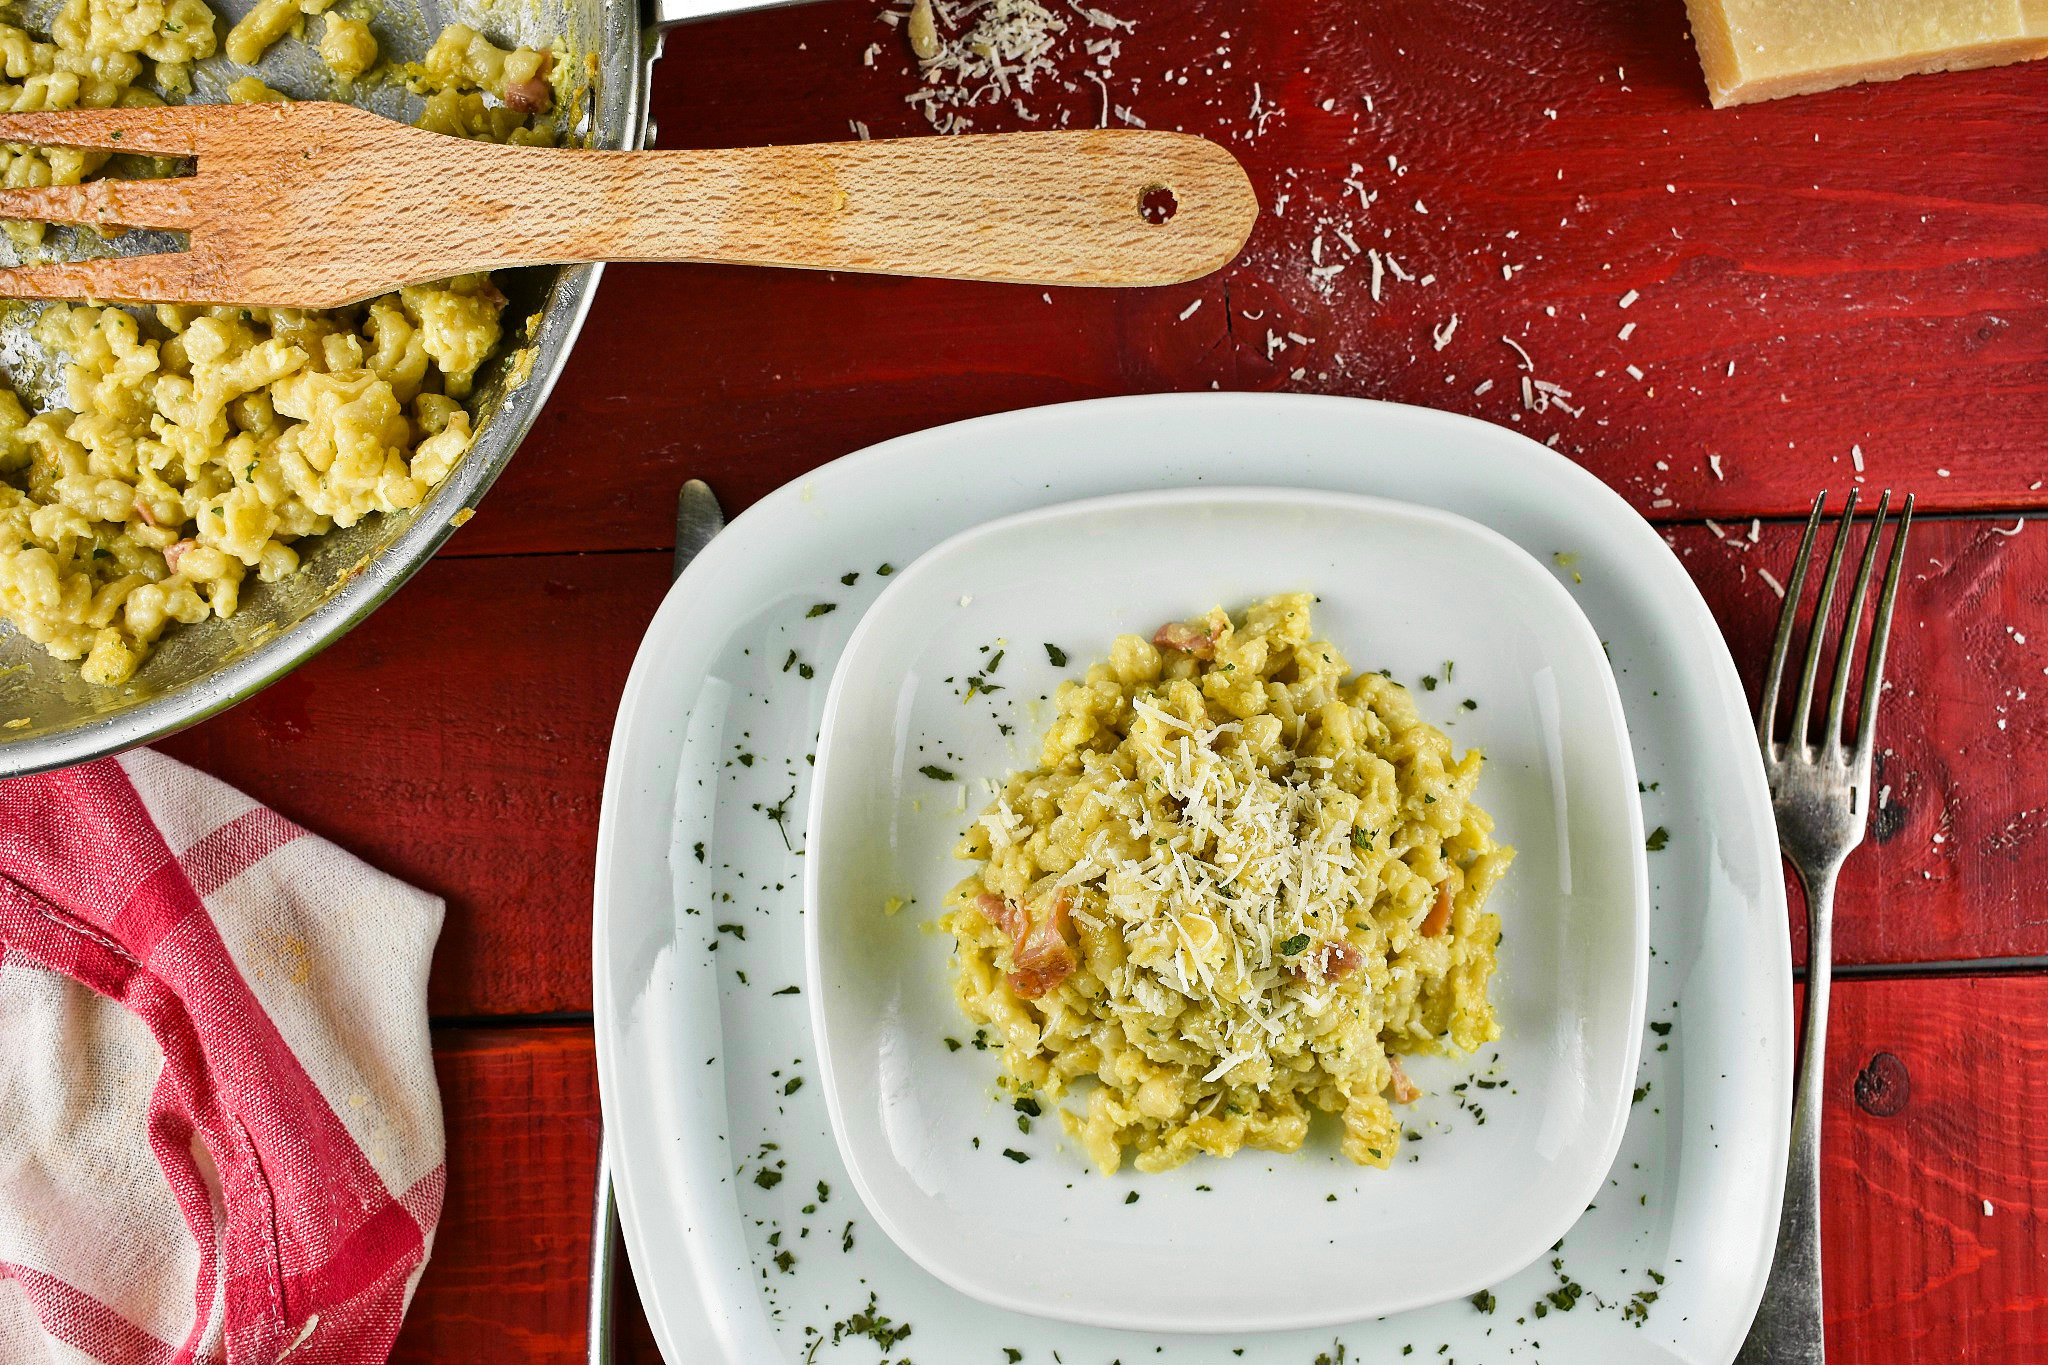 Best-carbonara-recipe-with-traditional-or-gluten-free-pasta-3-SunCakeMom